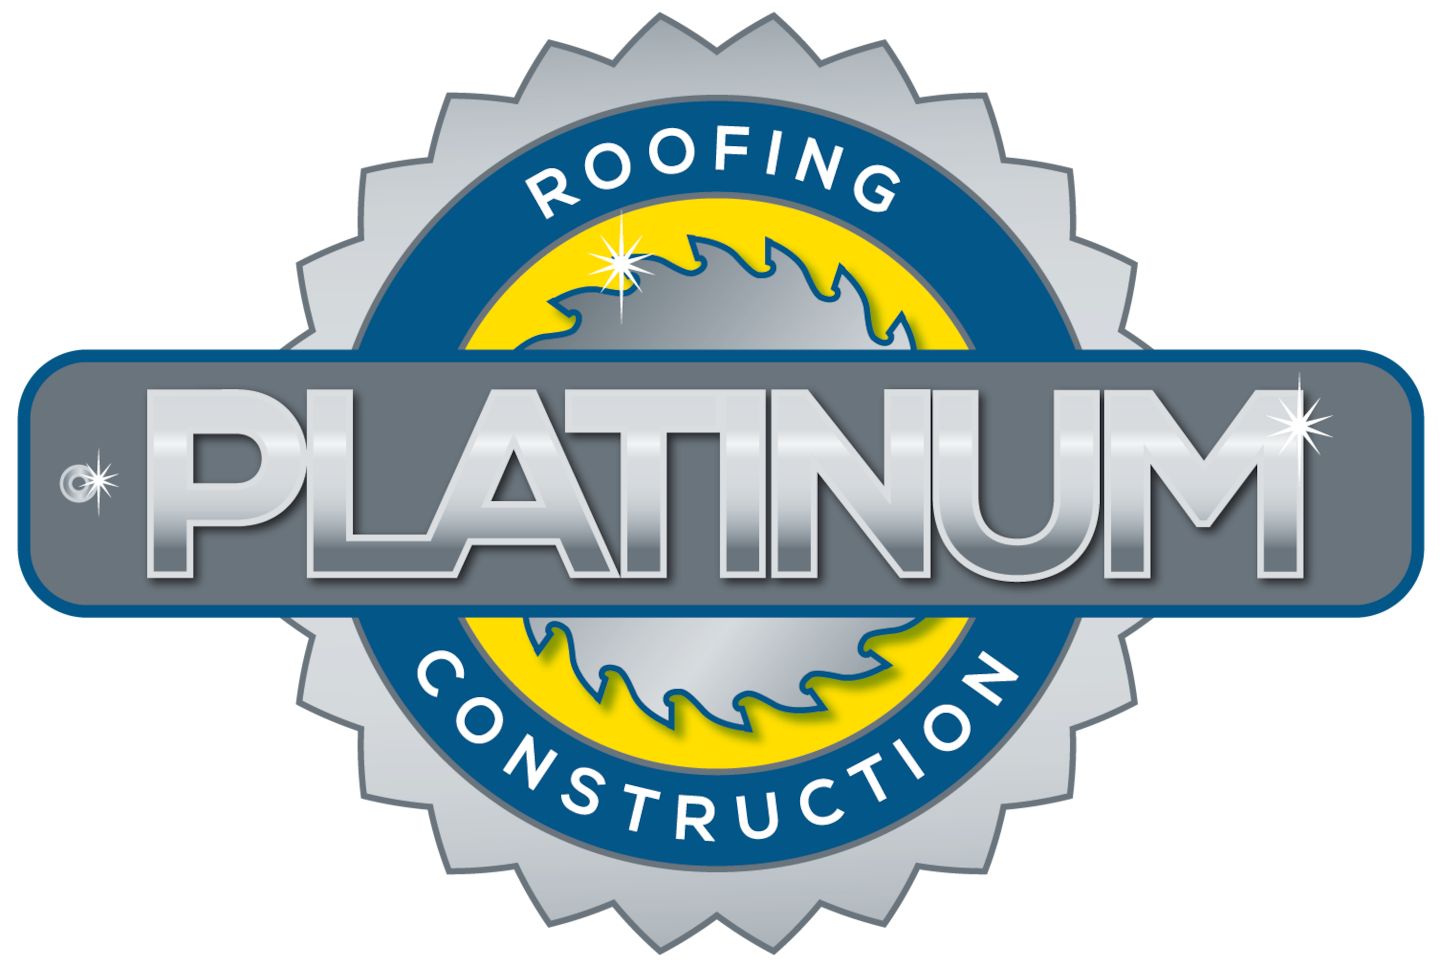 Platinum Roofing and Construction